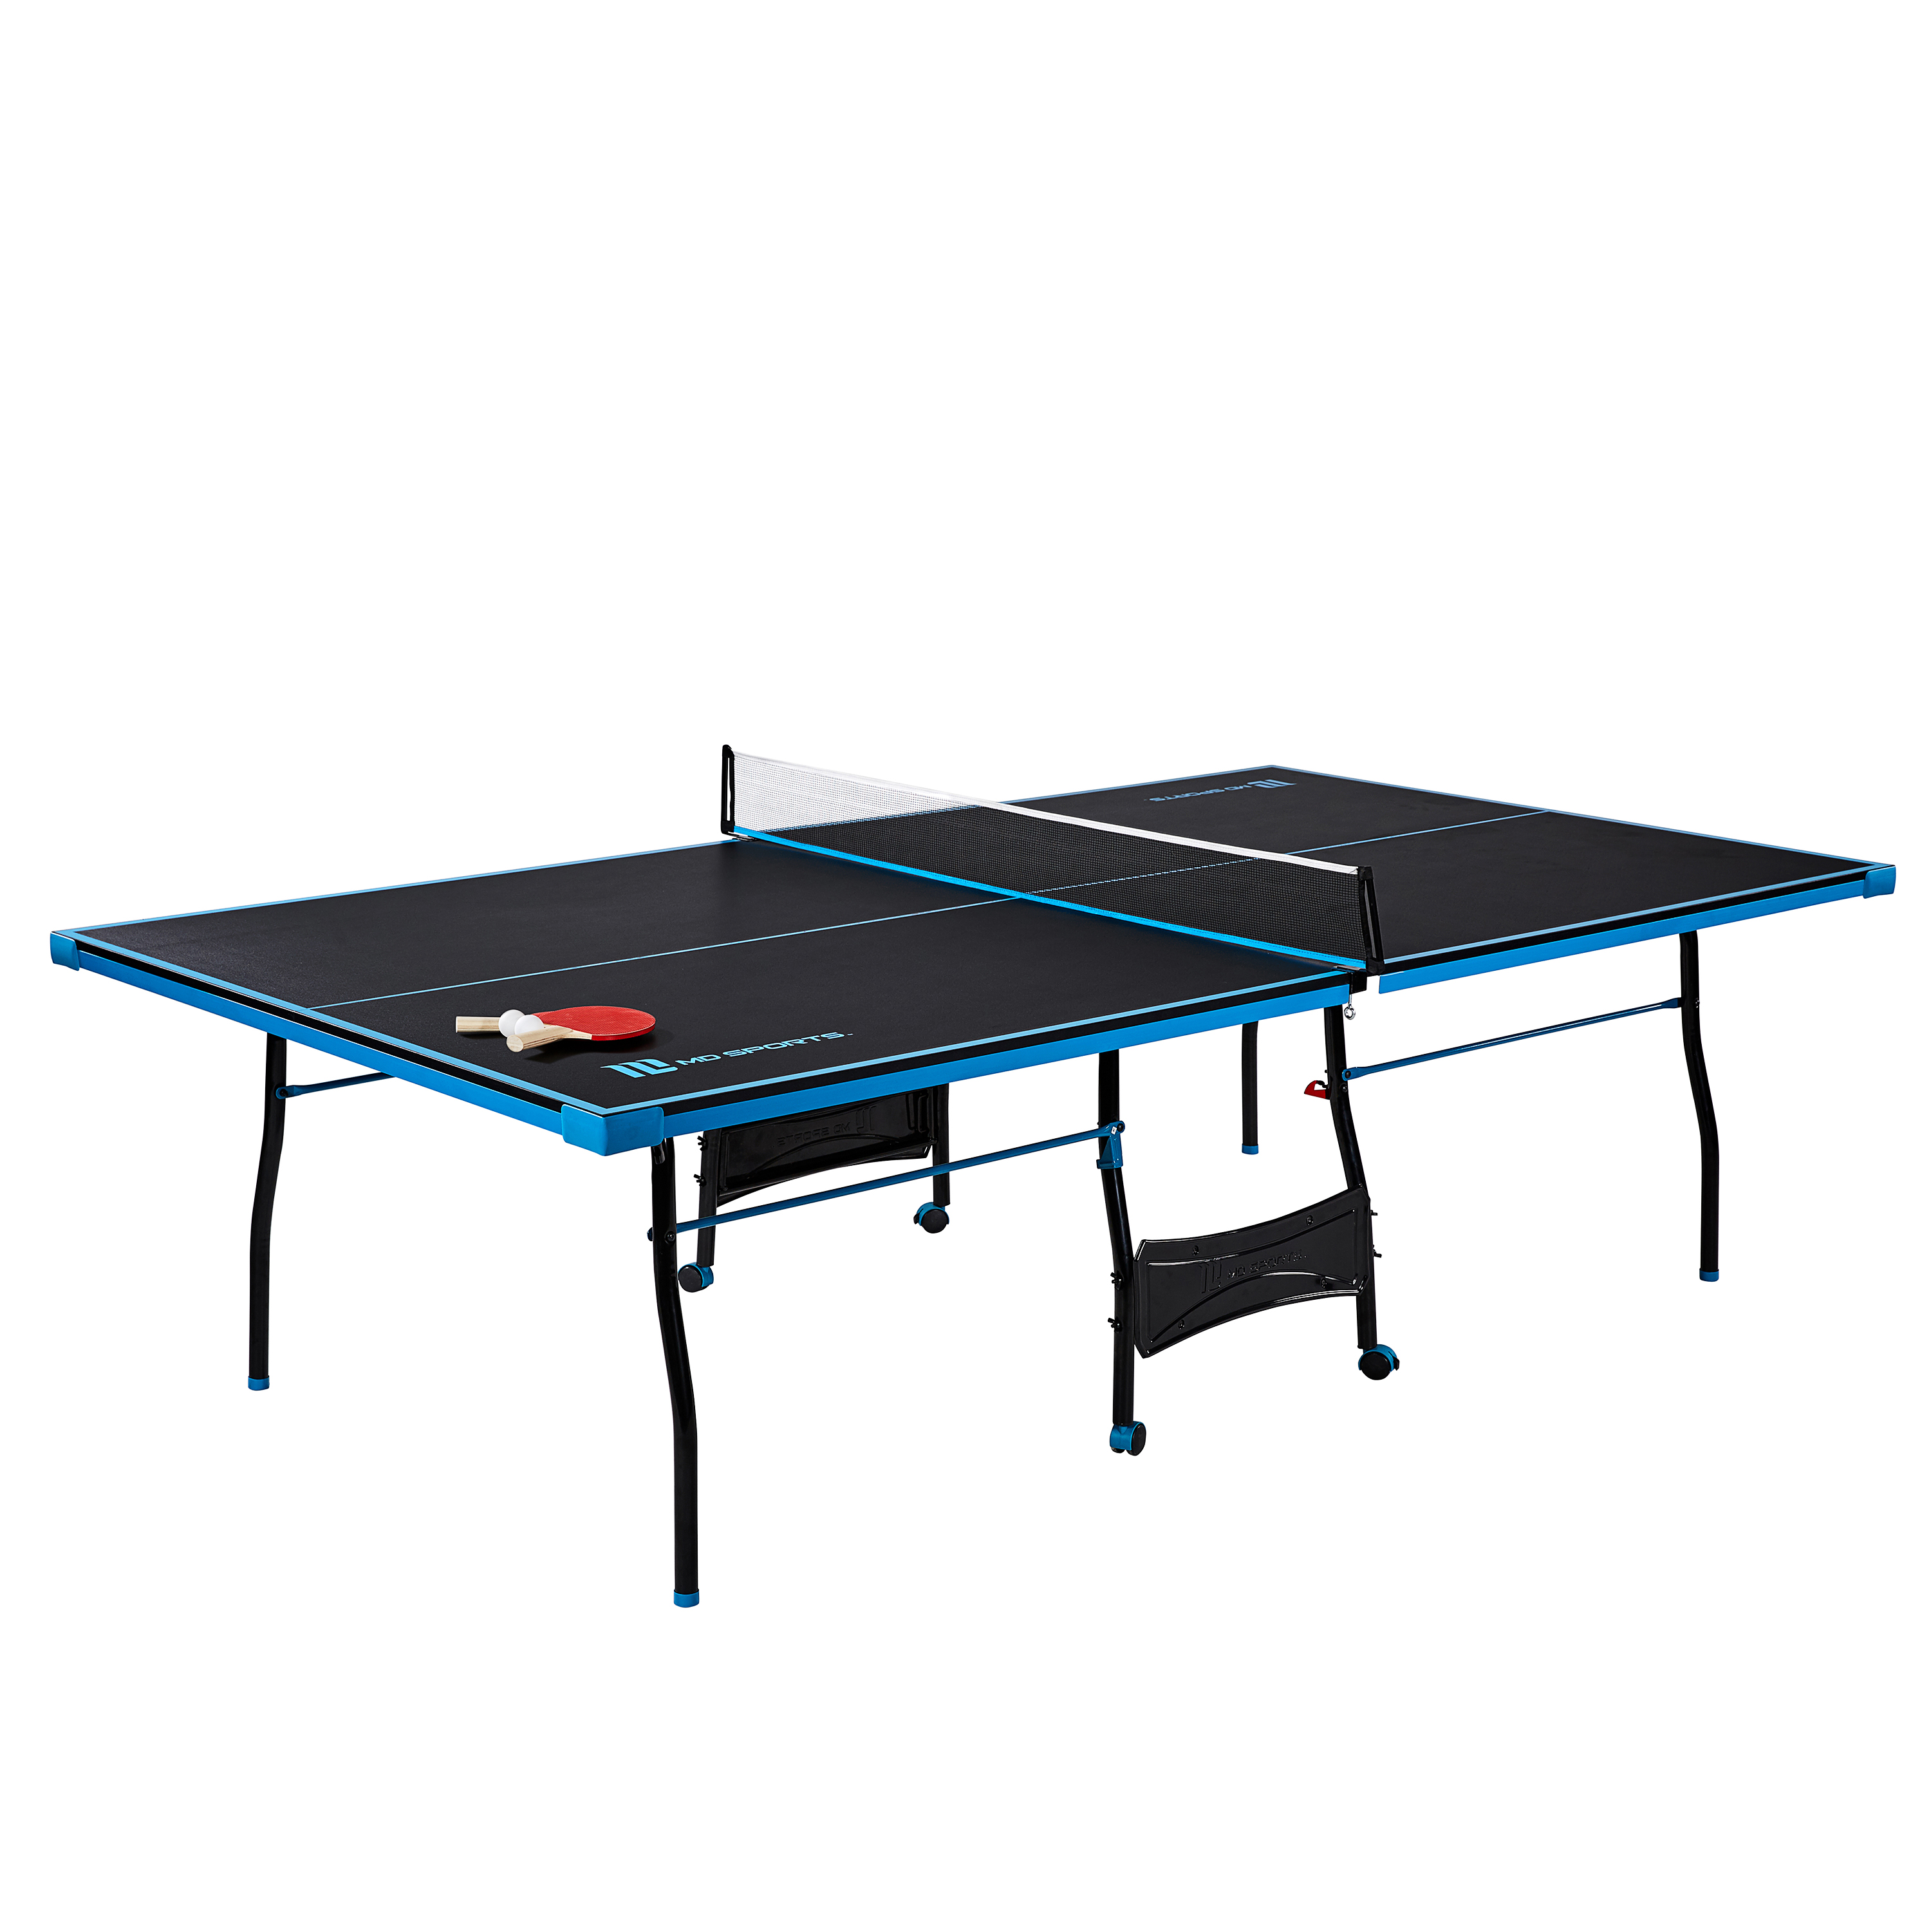 MD Sports Official Size Table Tennis Table, with Paddle and Balls, Black/Blue